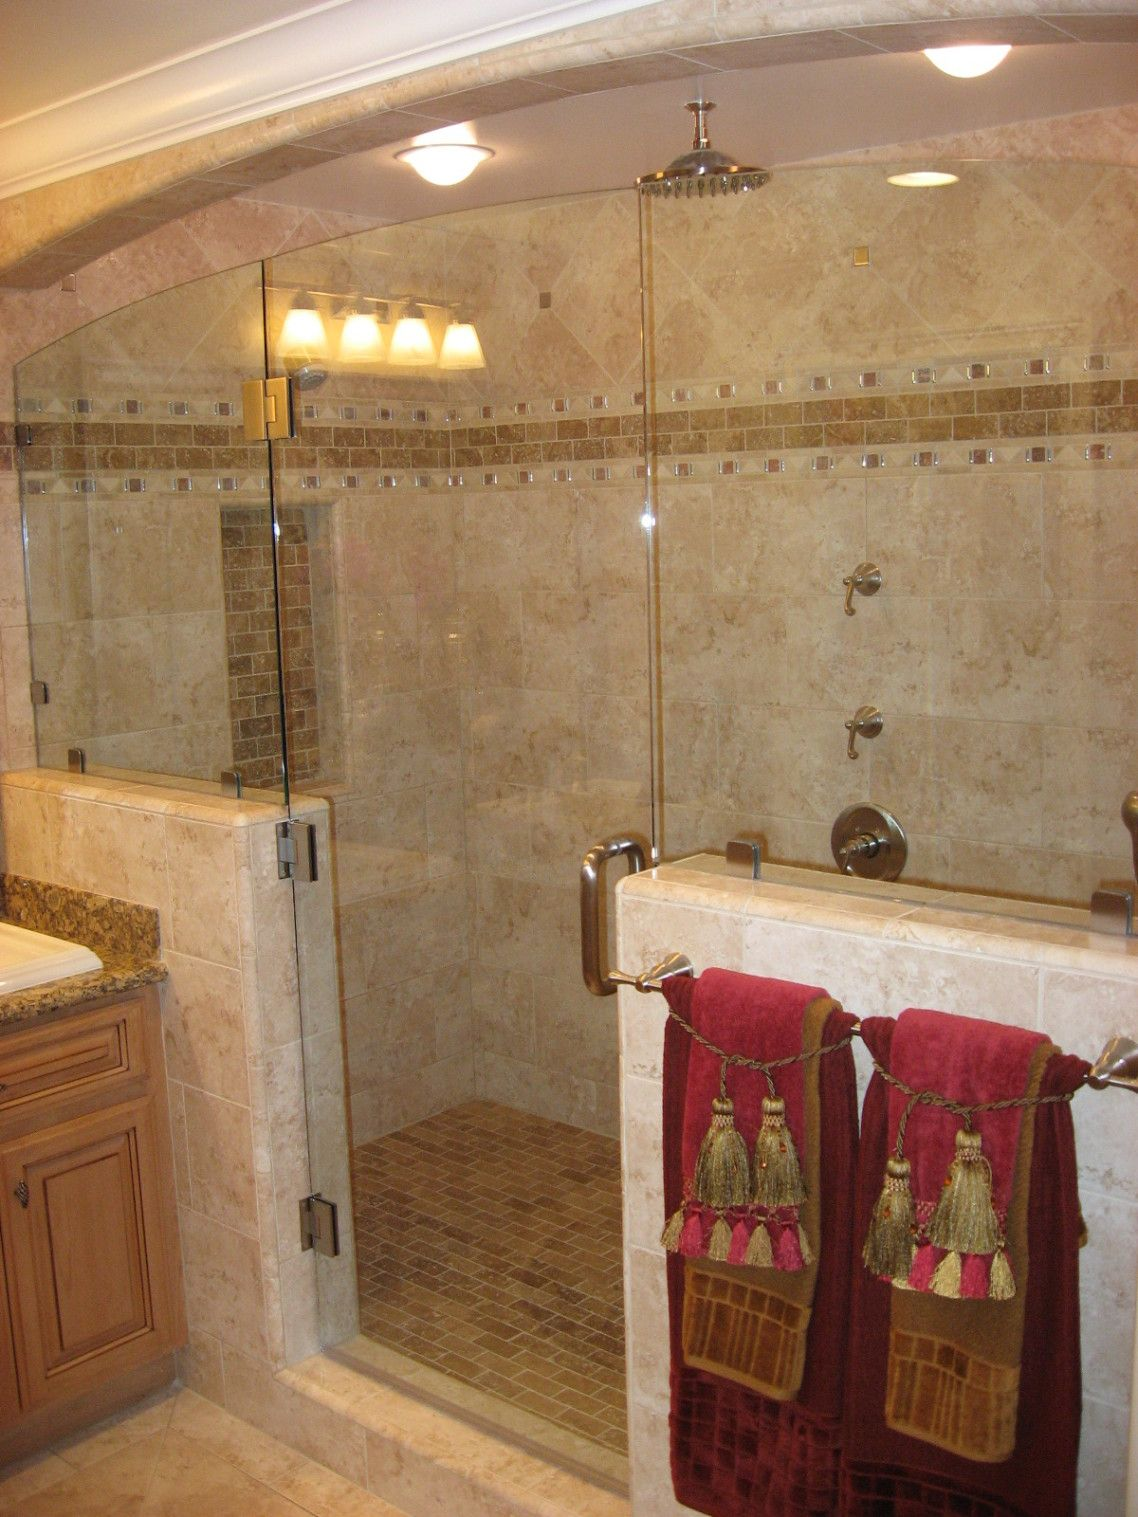 Walk In Showers No Doors Half Wall With Glass On Top Diy Bathroom Remodel Shower Remodel Bathrooms Remodel